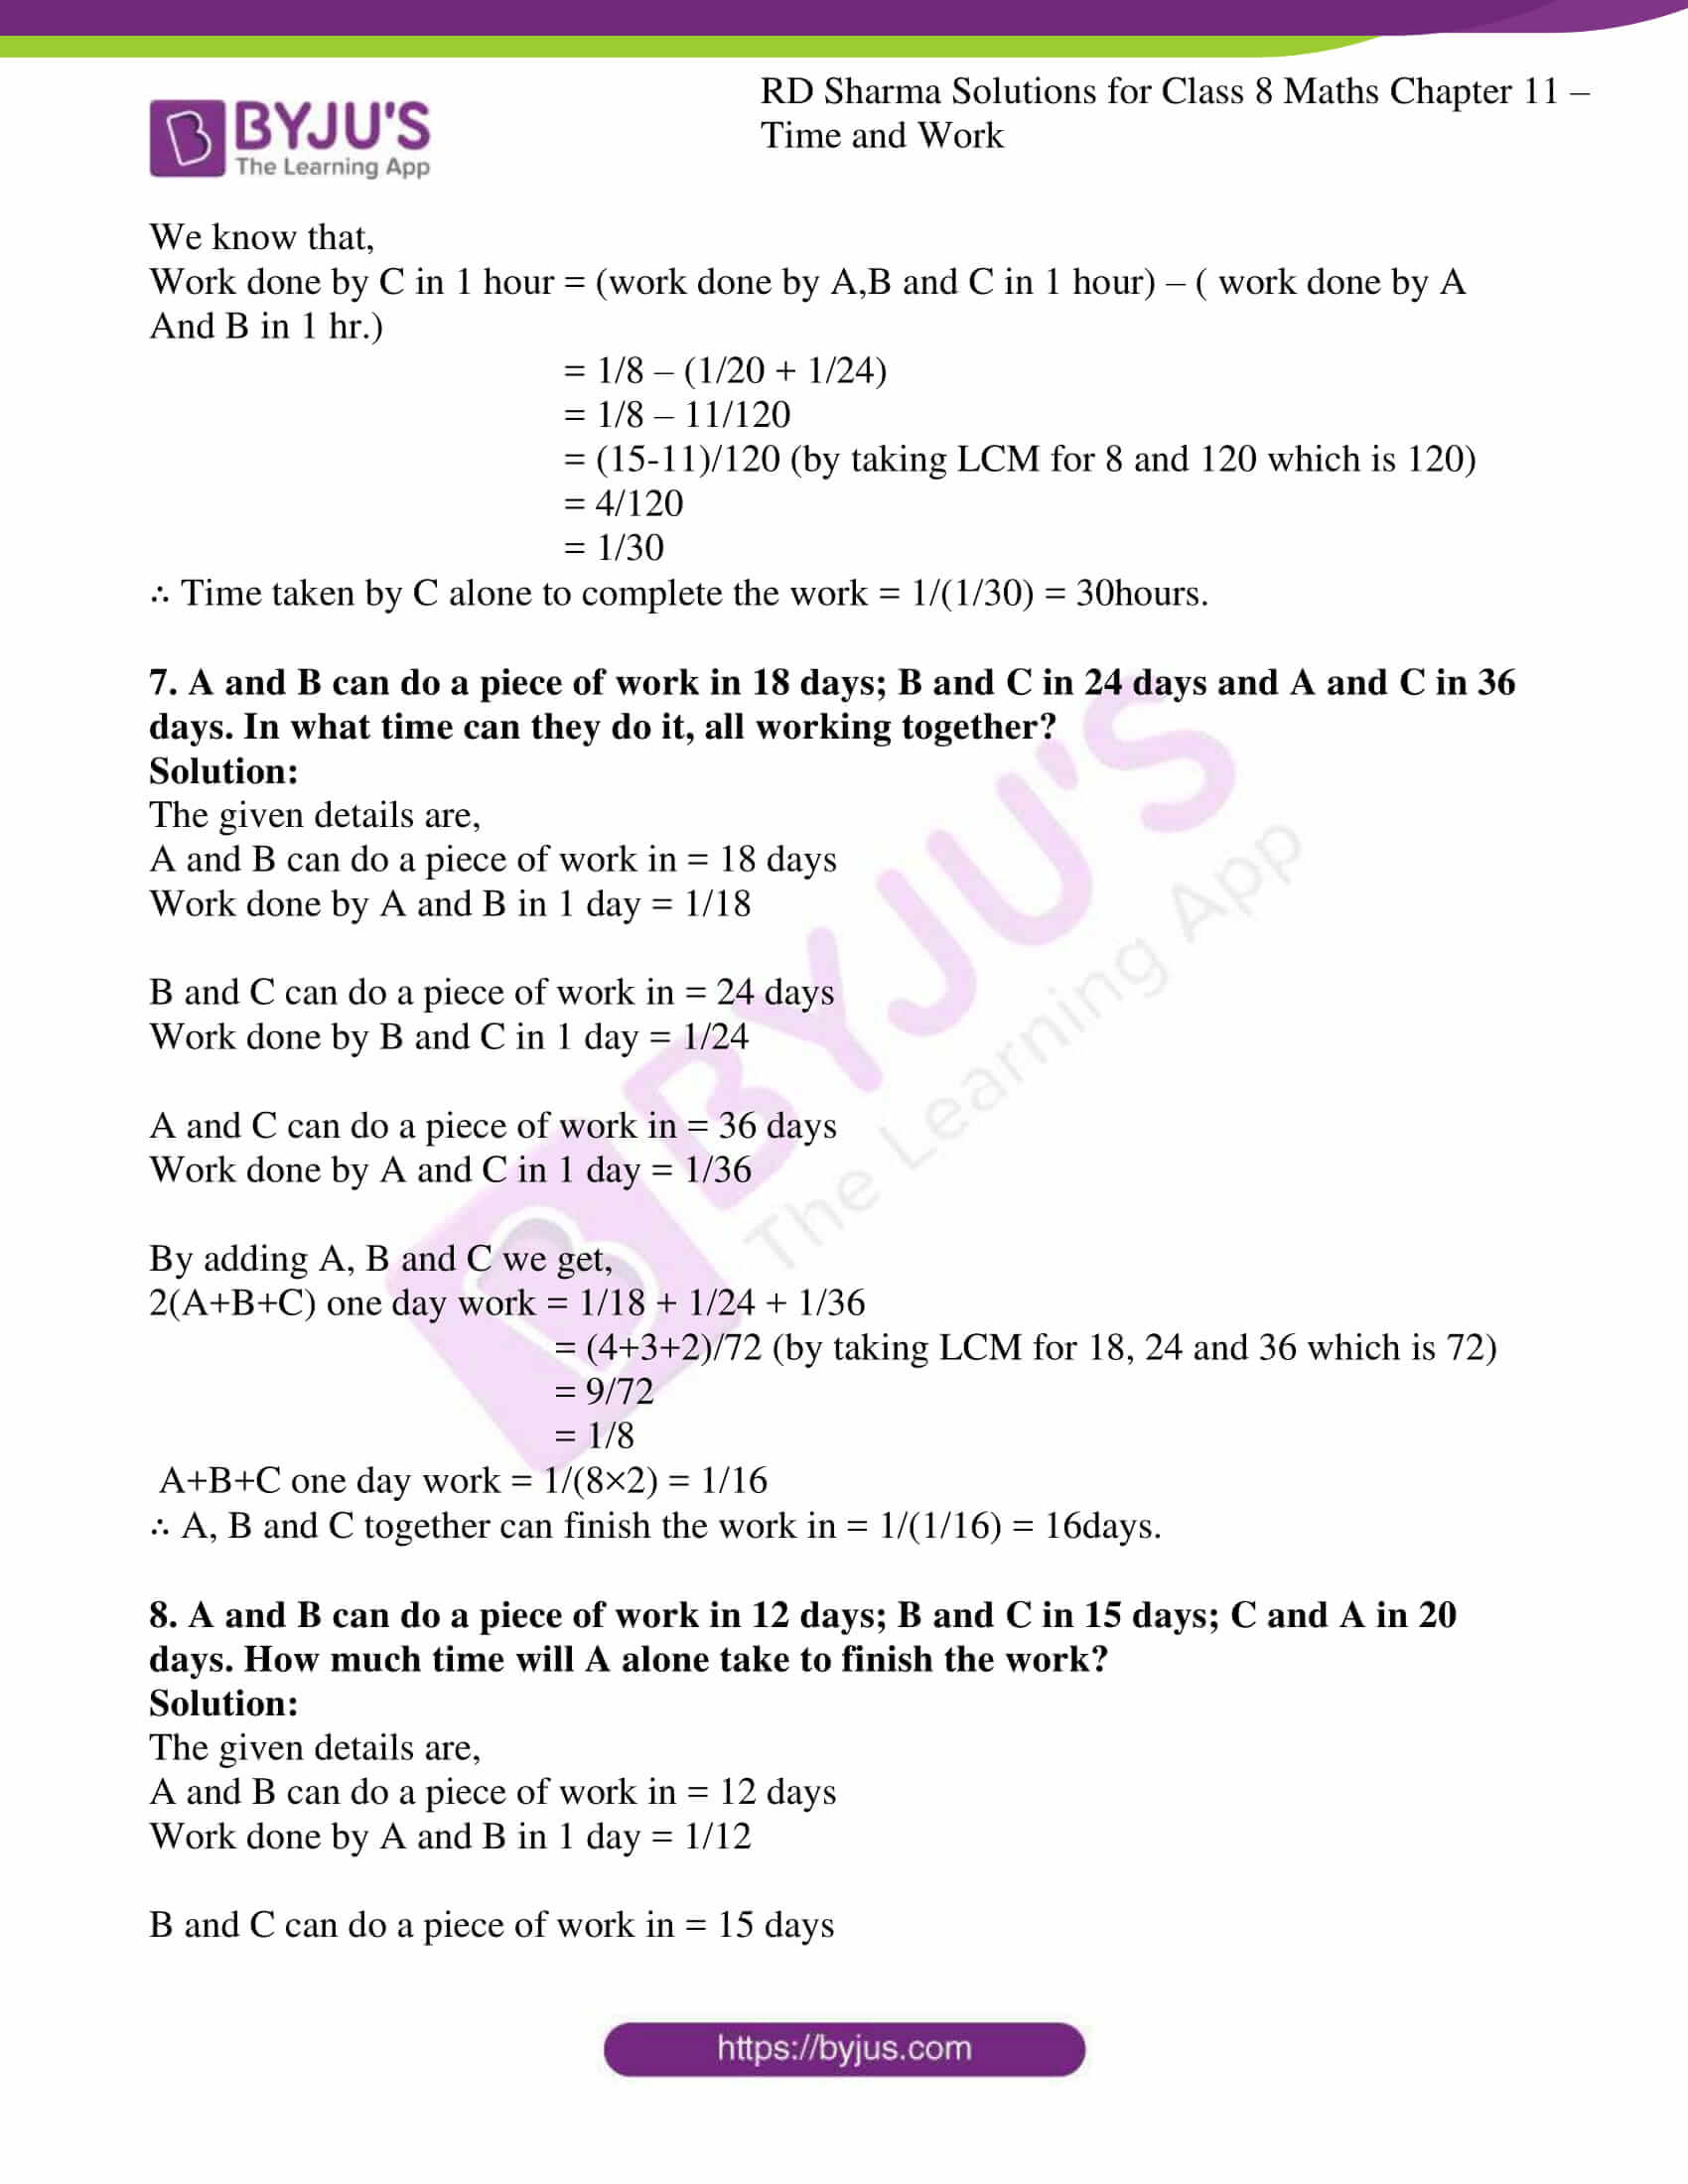 Rd Sharma Solutions For Class 8 Chapter 11 Time And Work